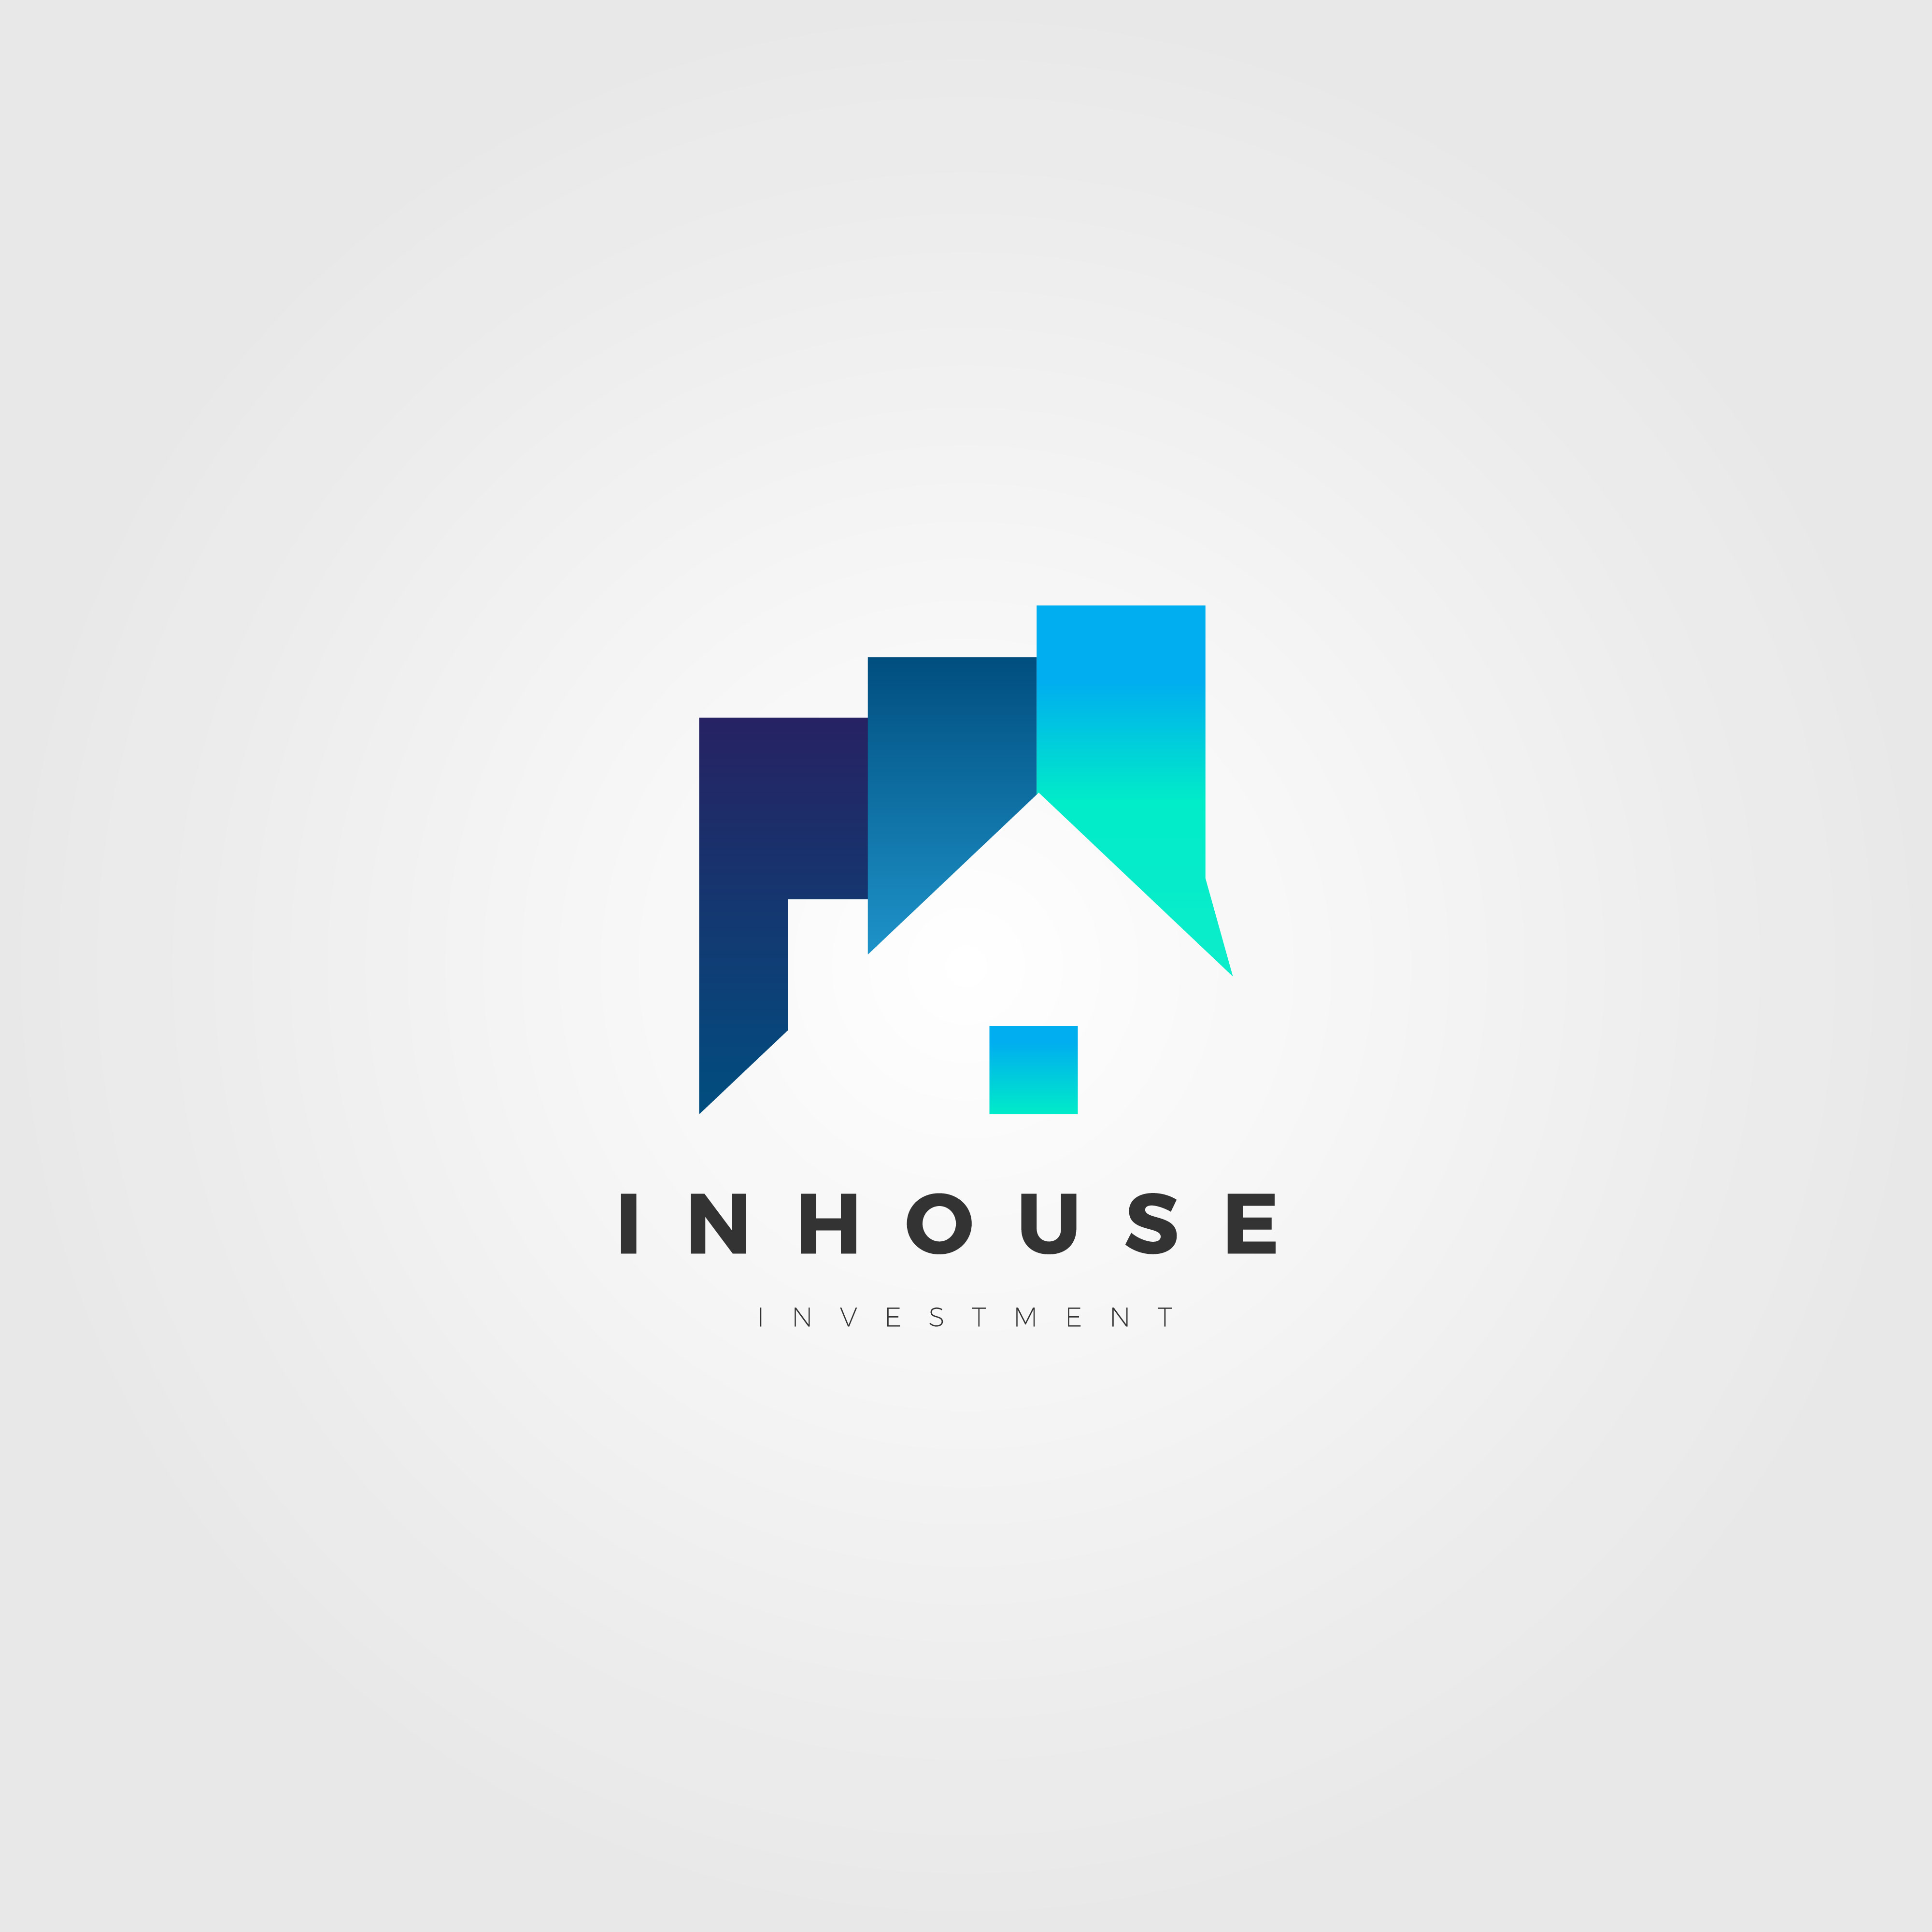 Property House Investment Company Business Logo Template